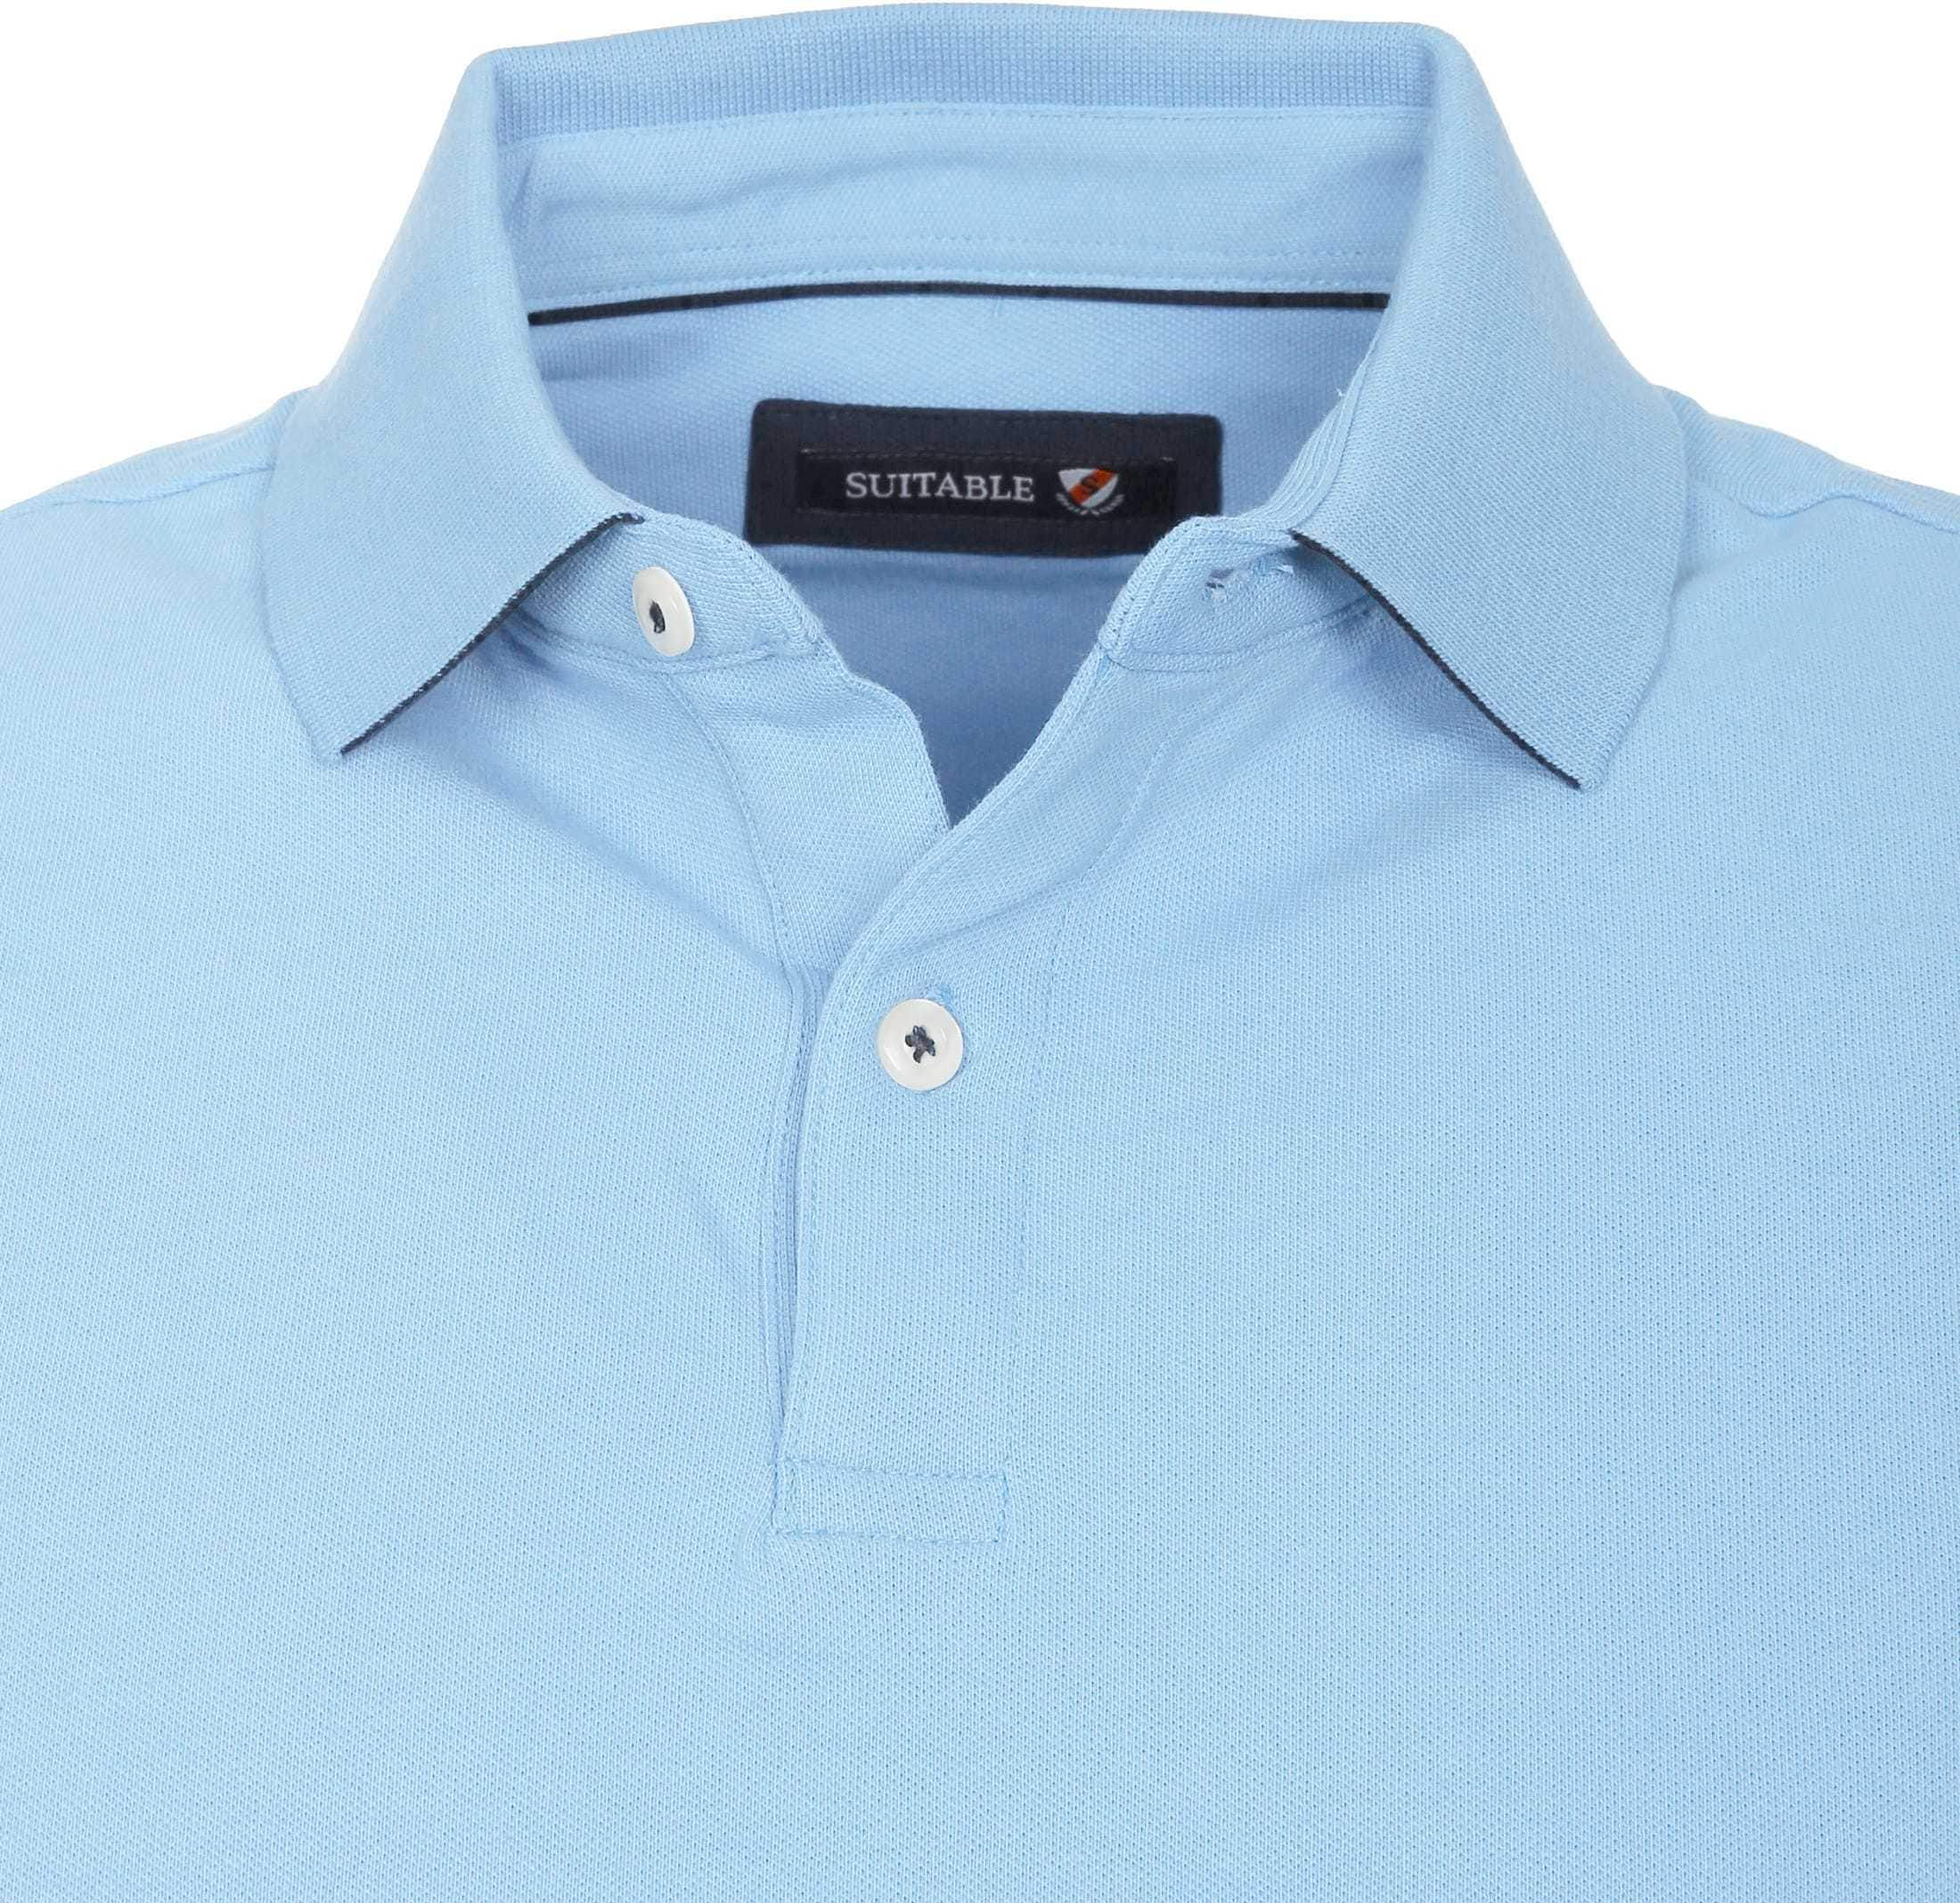 Suitable Poloshirt Basic Hellblau foto 1